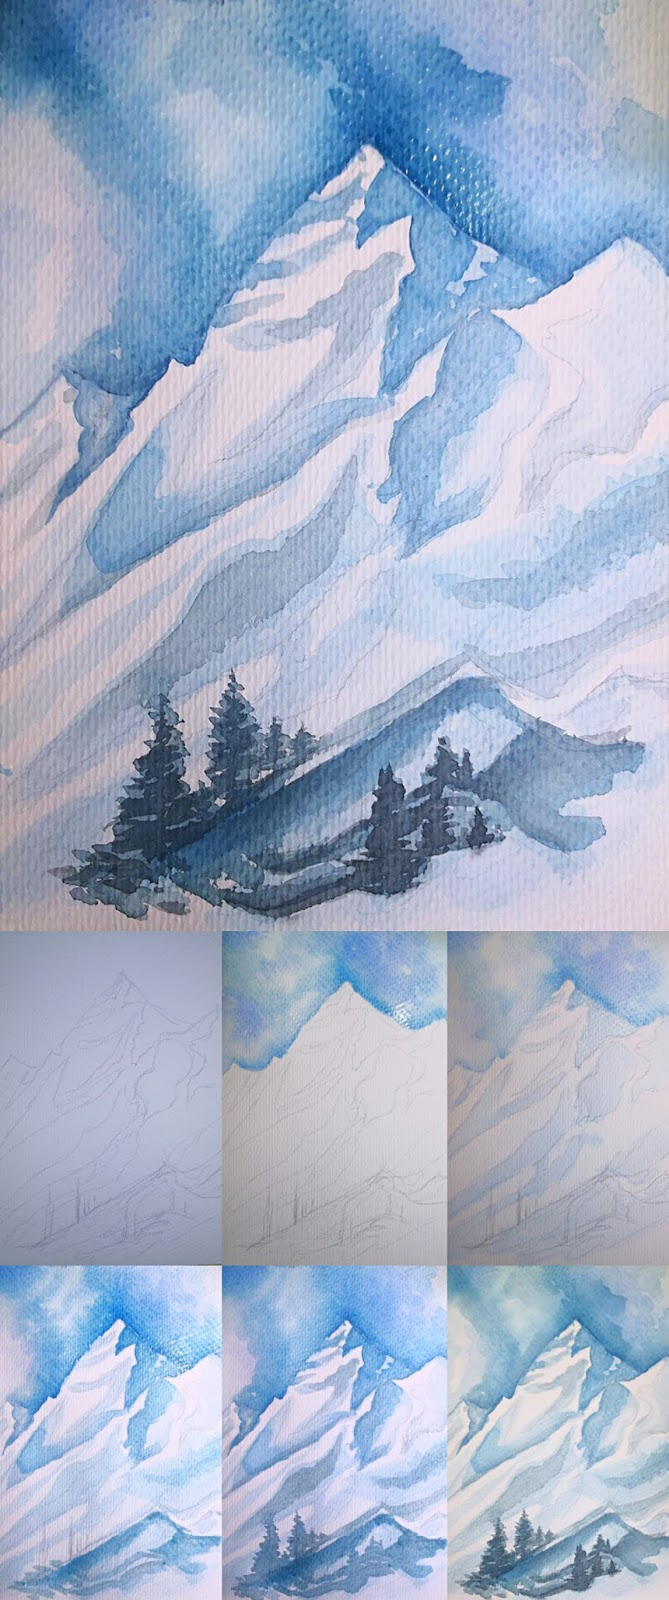 2 How To Draw Snow Mountains Hi Newself In 2020 How To Draw Snow Mountain Drawing Watercolor Paintings Easy